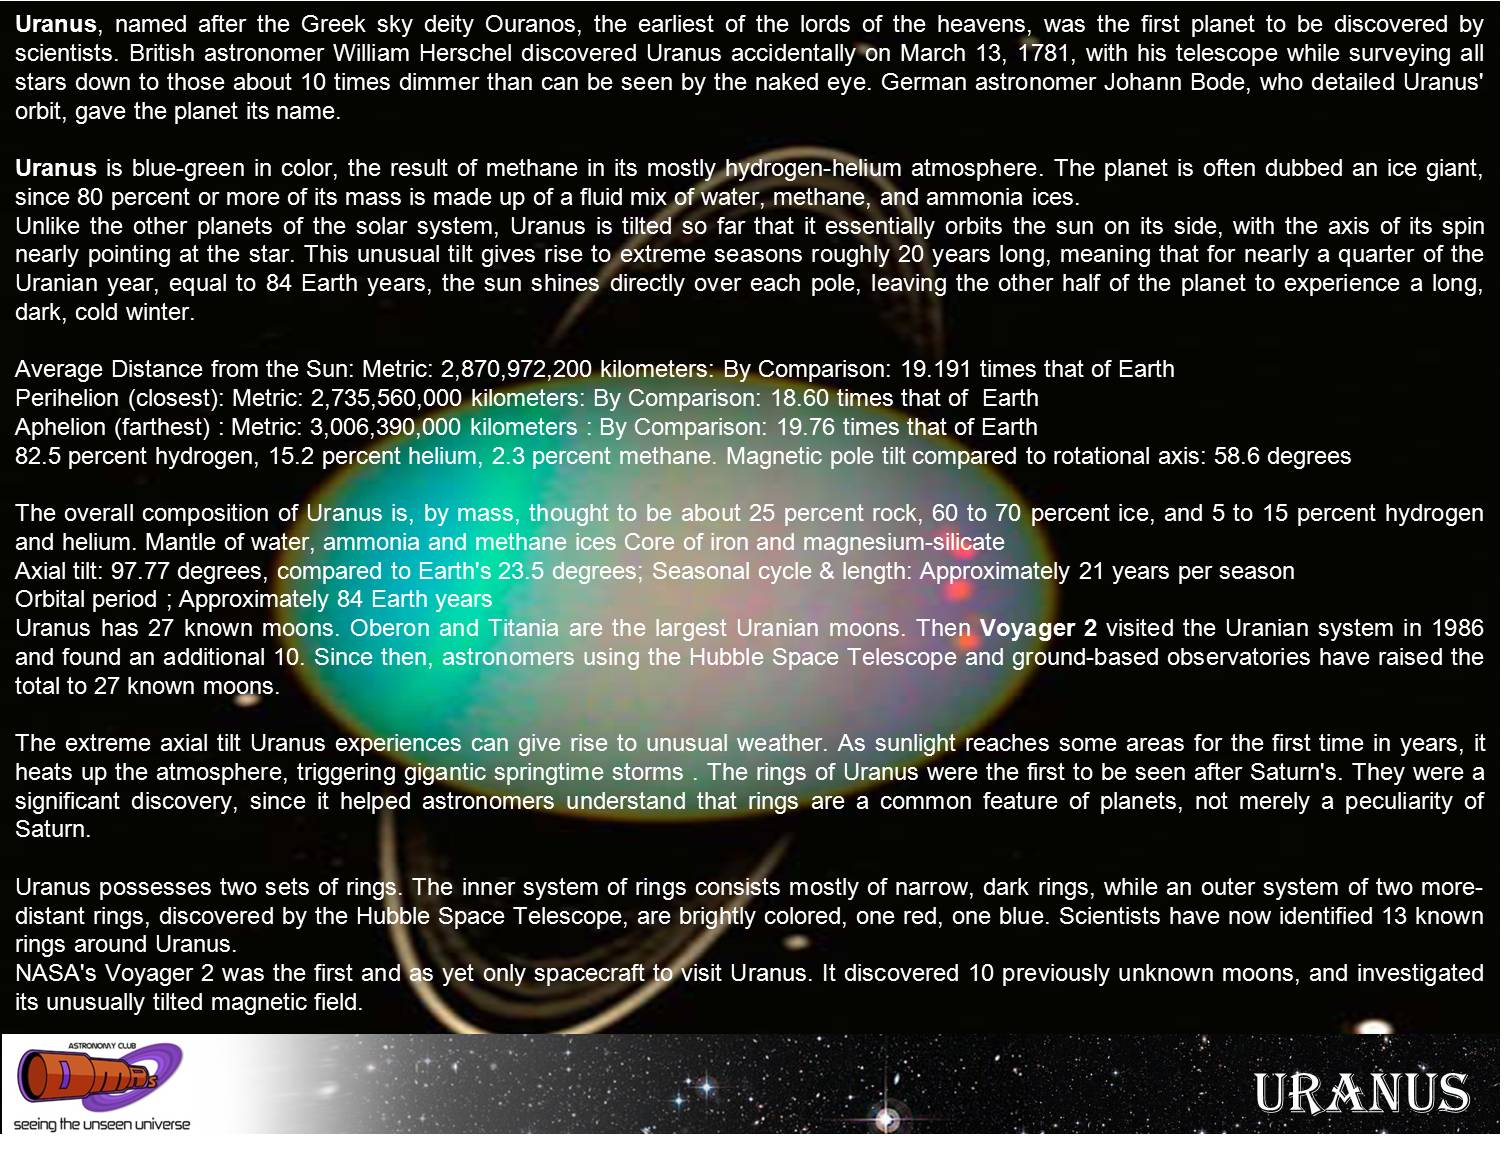 DMR'S ASTRONOMY CLUB: Solar System: Facts about Uranus